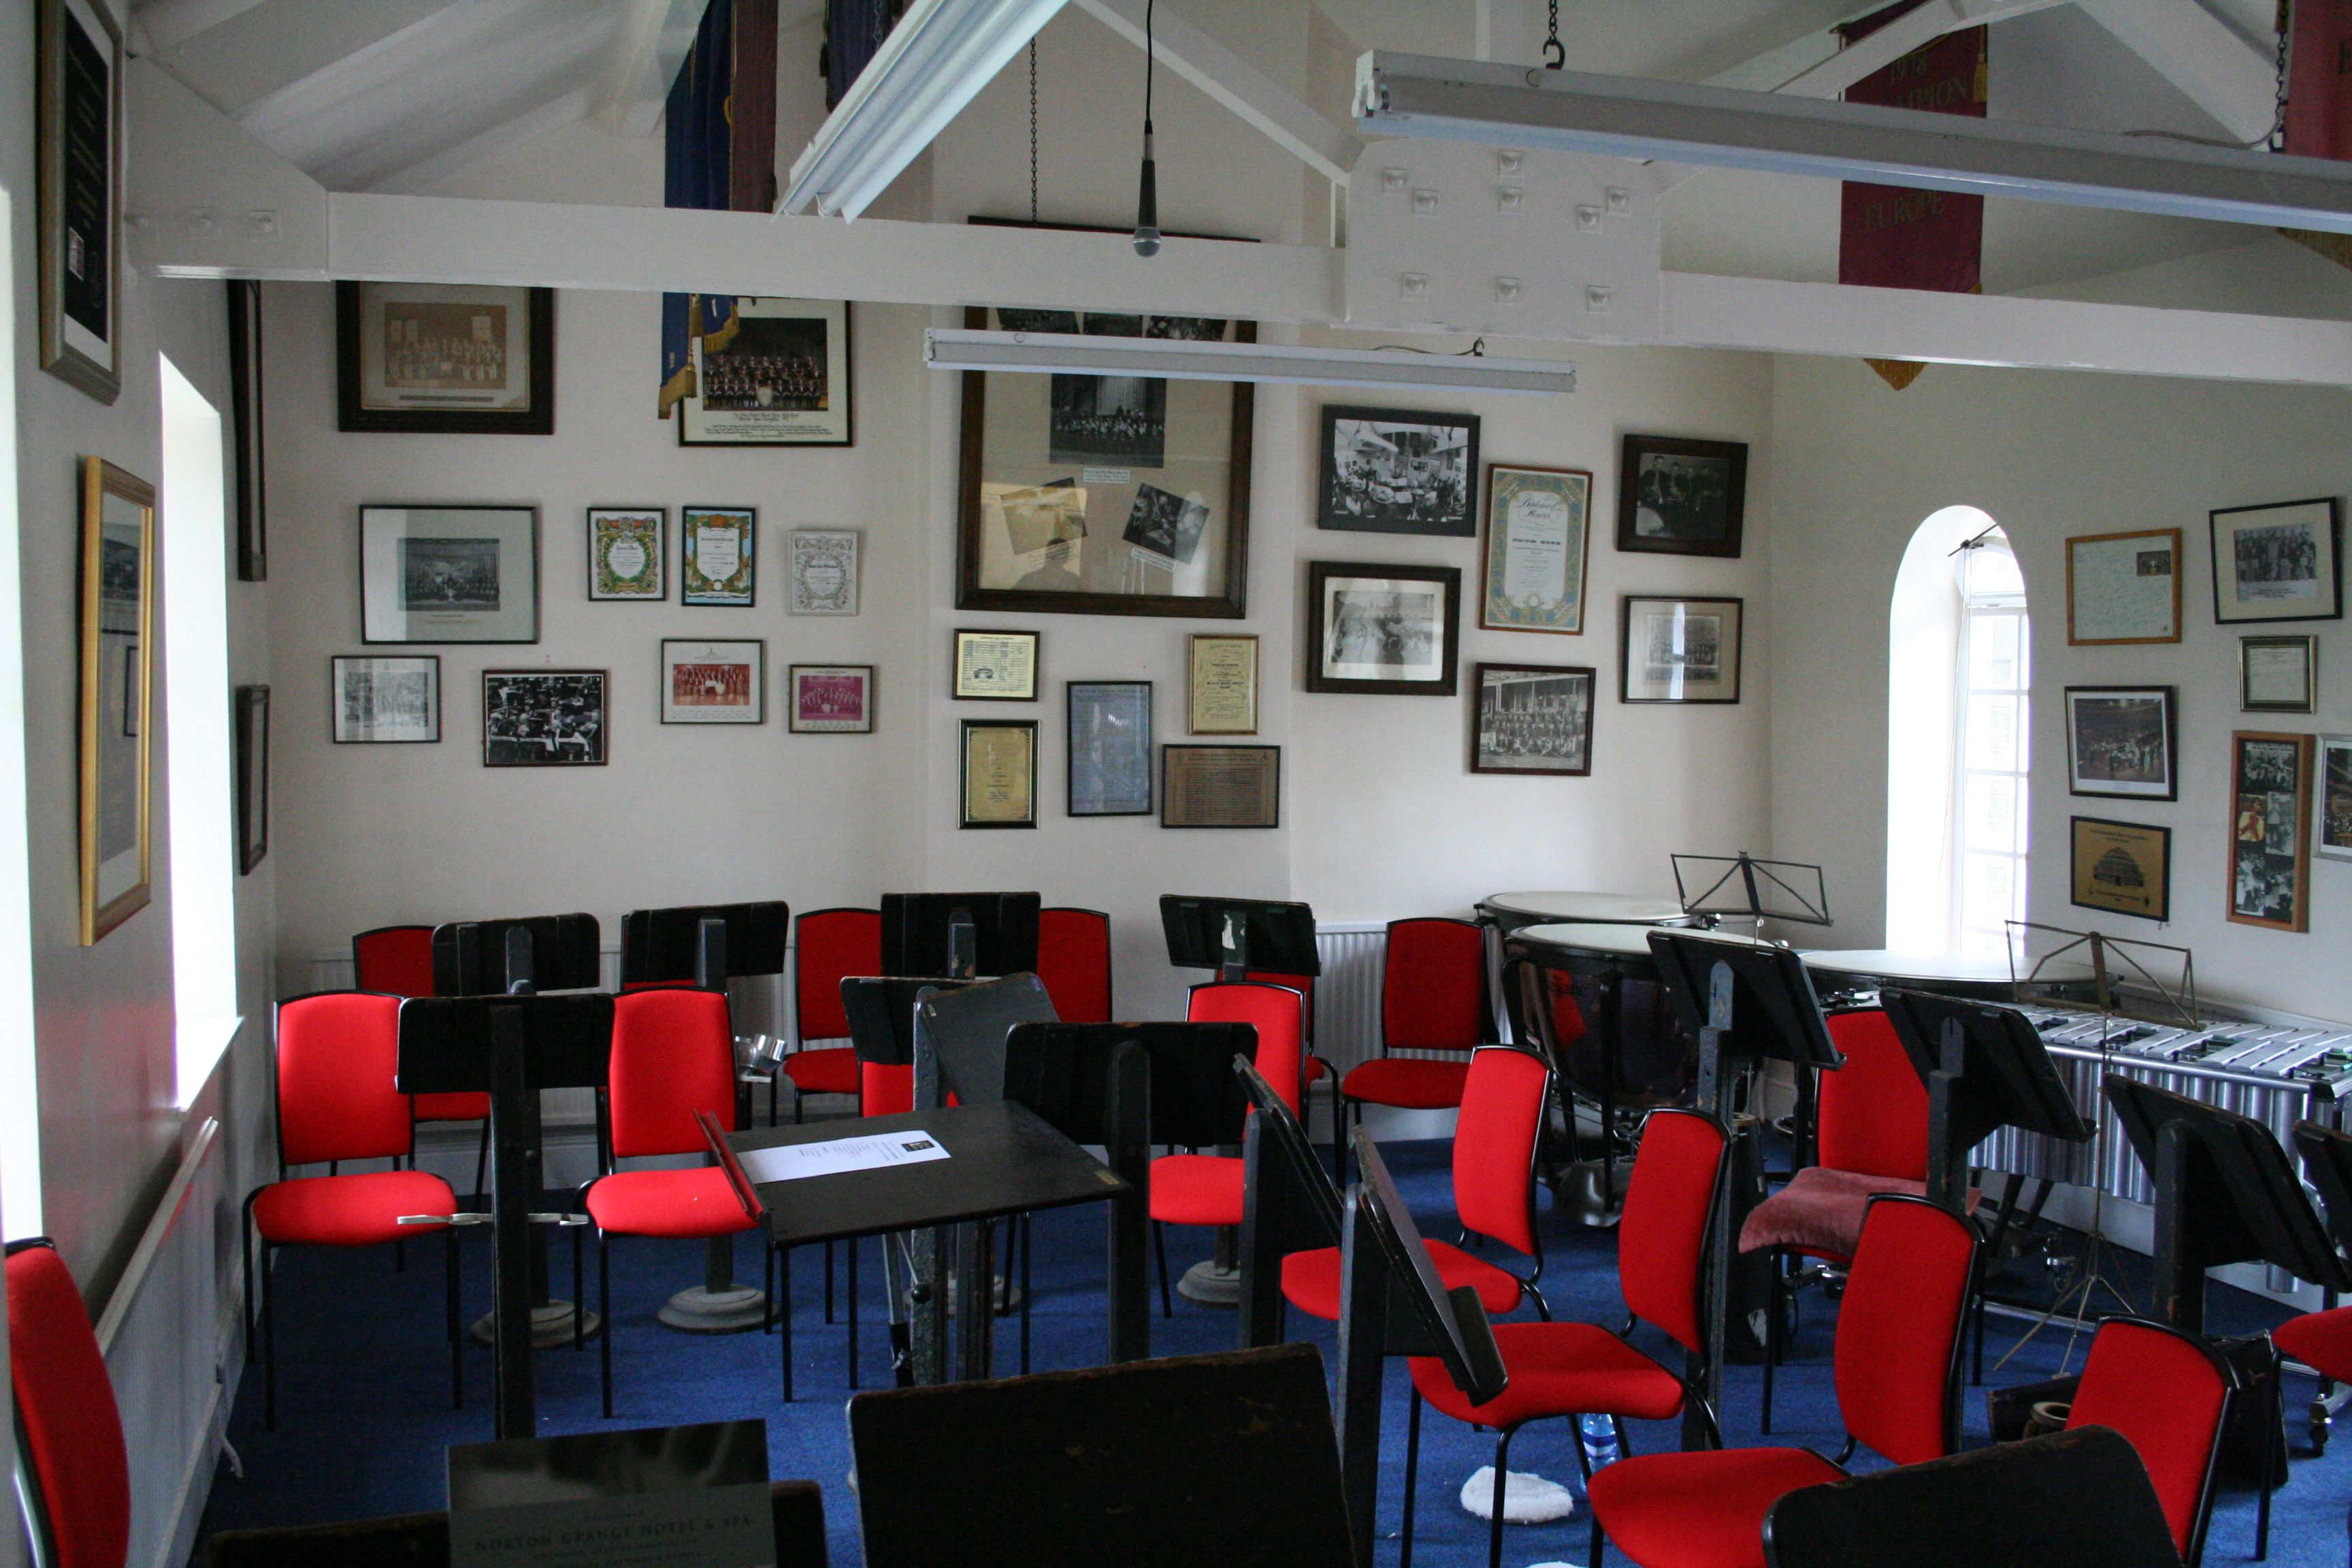 Opus 1s at Black Dyke Band practice hall  The Opus 1 is the